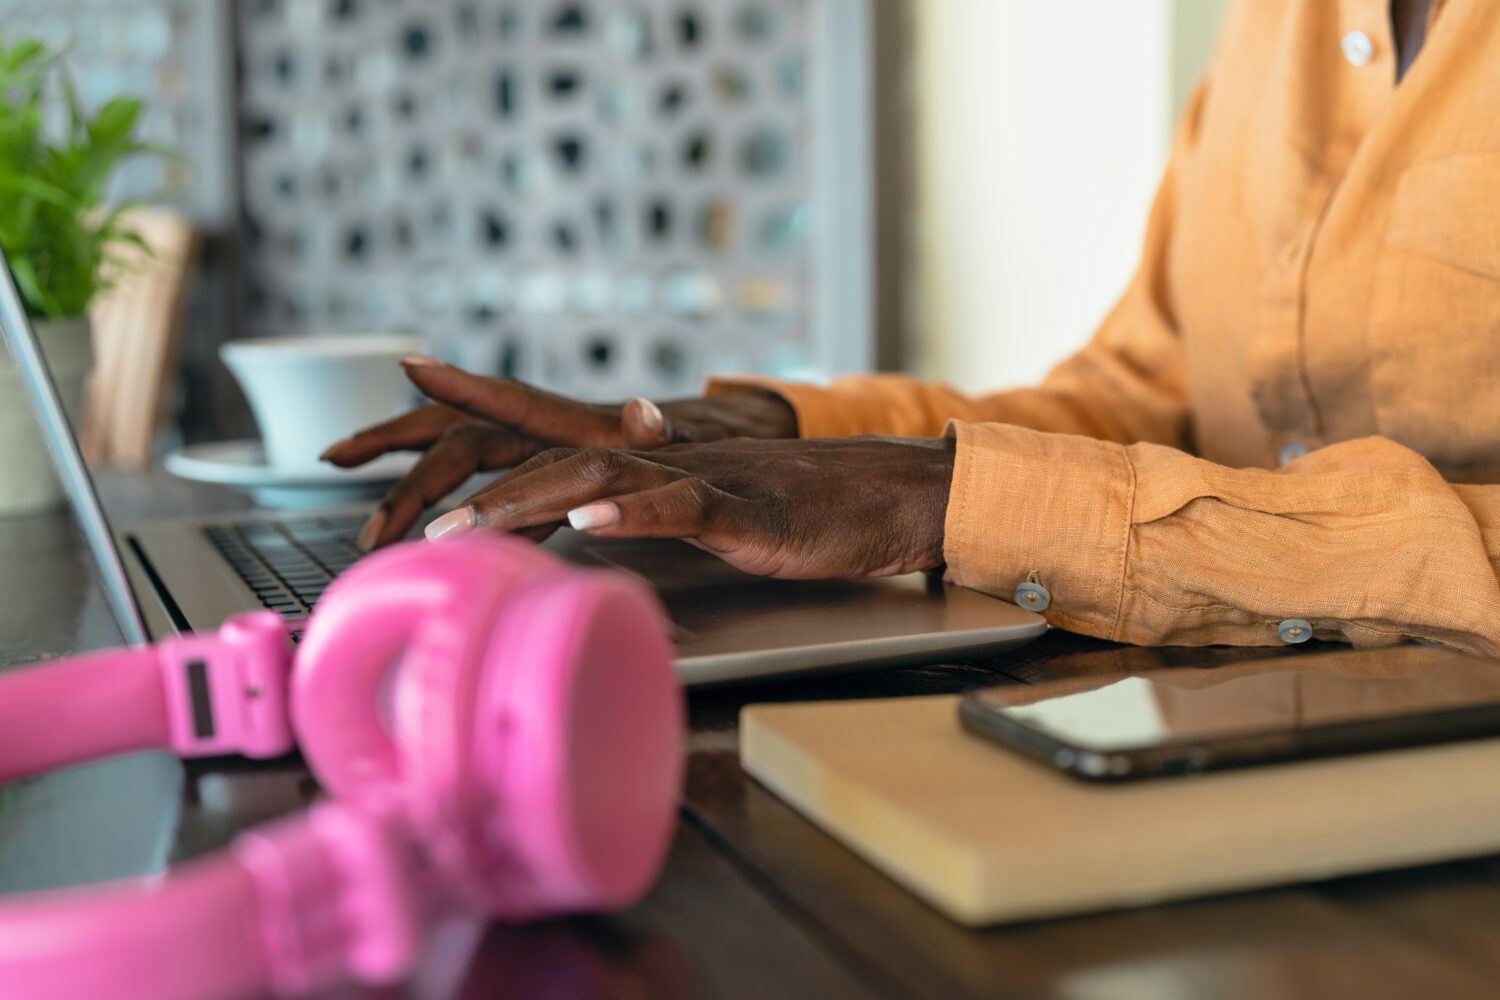 cropped photo of african american woman typing on her computer with pink headphones nearby